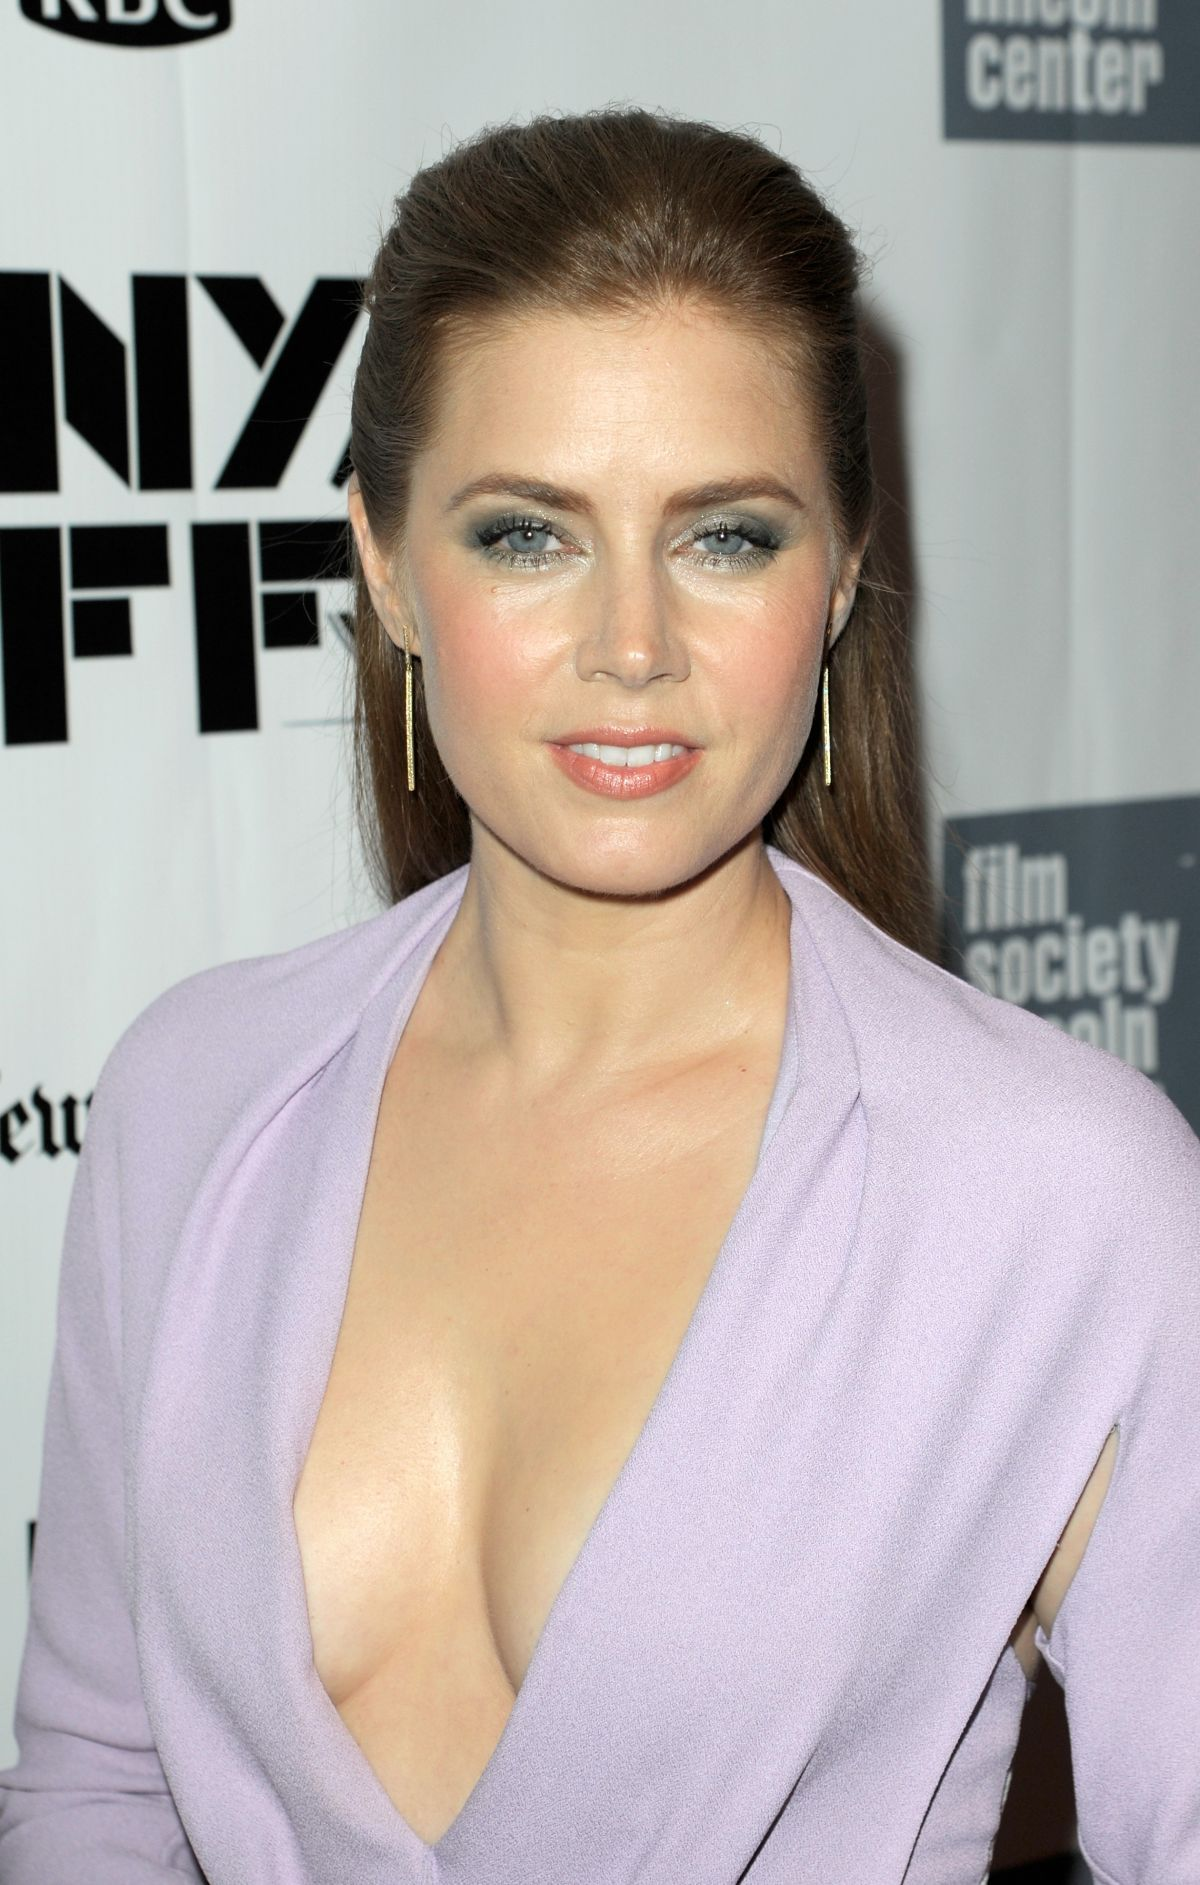 amy-adams-at-closing-night-gala-presentation-of-her-at-new-york-film-festival_9.jpg - 268.69 KB